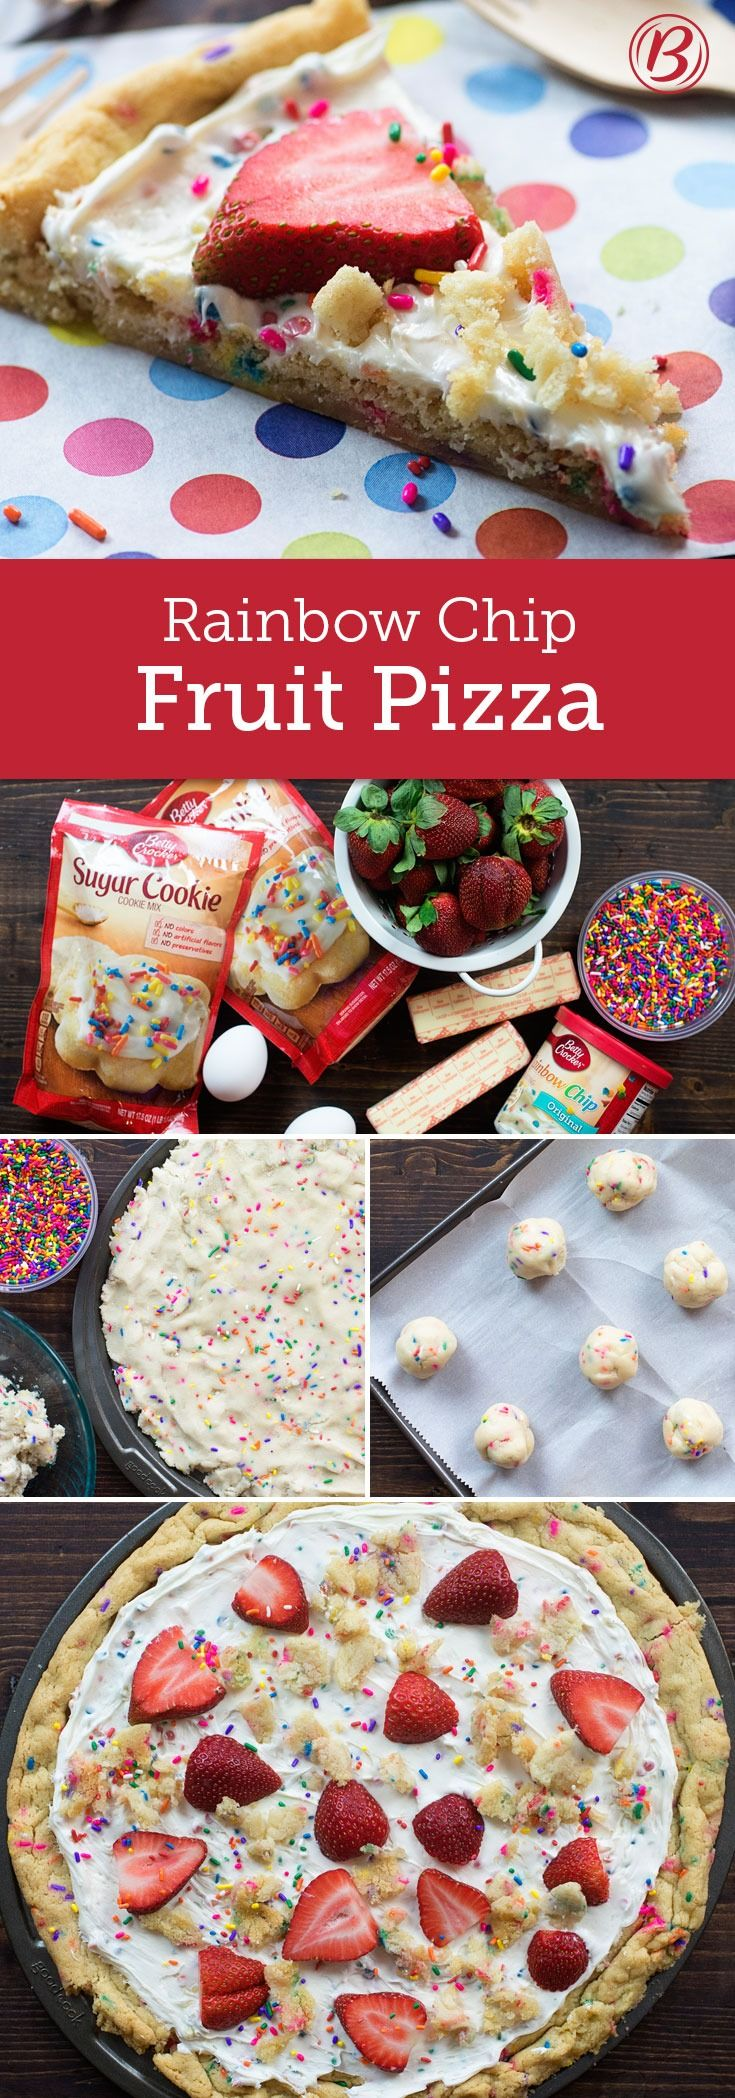 "Fruit pizzas are our go-to for any party: Fresh, sweet and always yummy, they're a total crowd-pleaser. Our ""pizza"" is a giant sugar cookie (baked with sprinkles, of course!) frosted with Rainbow Chip frosting, and topped with fresh strawberries, extra cookie crumbles and more sprinkles for a too-cute sweet treat. If you have them on hand, raspberries and blueberries would work perfectly on the pizza too."